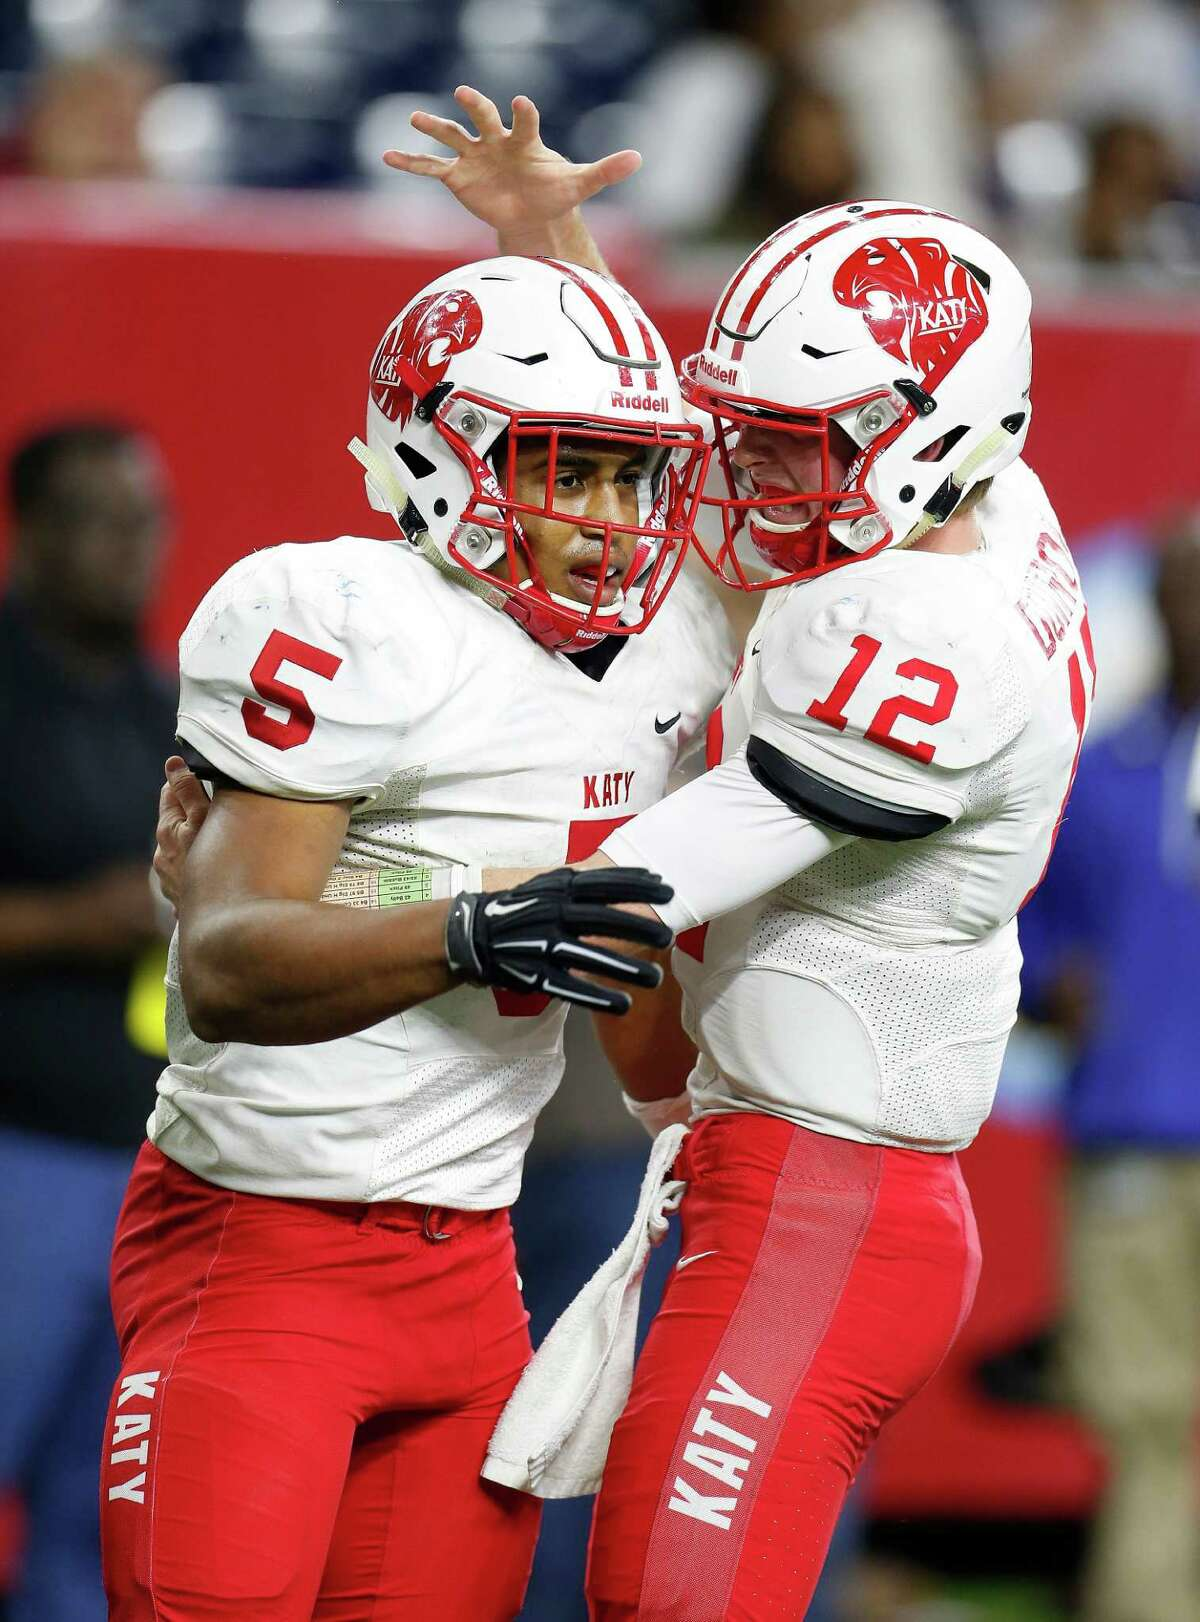 Storylines to watchKaty vs. Cibolo Steele With the last of their regional hurdles out of the way - Manvel for Katy and rival Schertz Clemens for Cibolo - the two state power will collide for the second year in a row and third time in four years. Katy won in 2012 in Waco and last season in overtime at NRG. This time, they'll meet at Alamo Stadium in San Antonio.